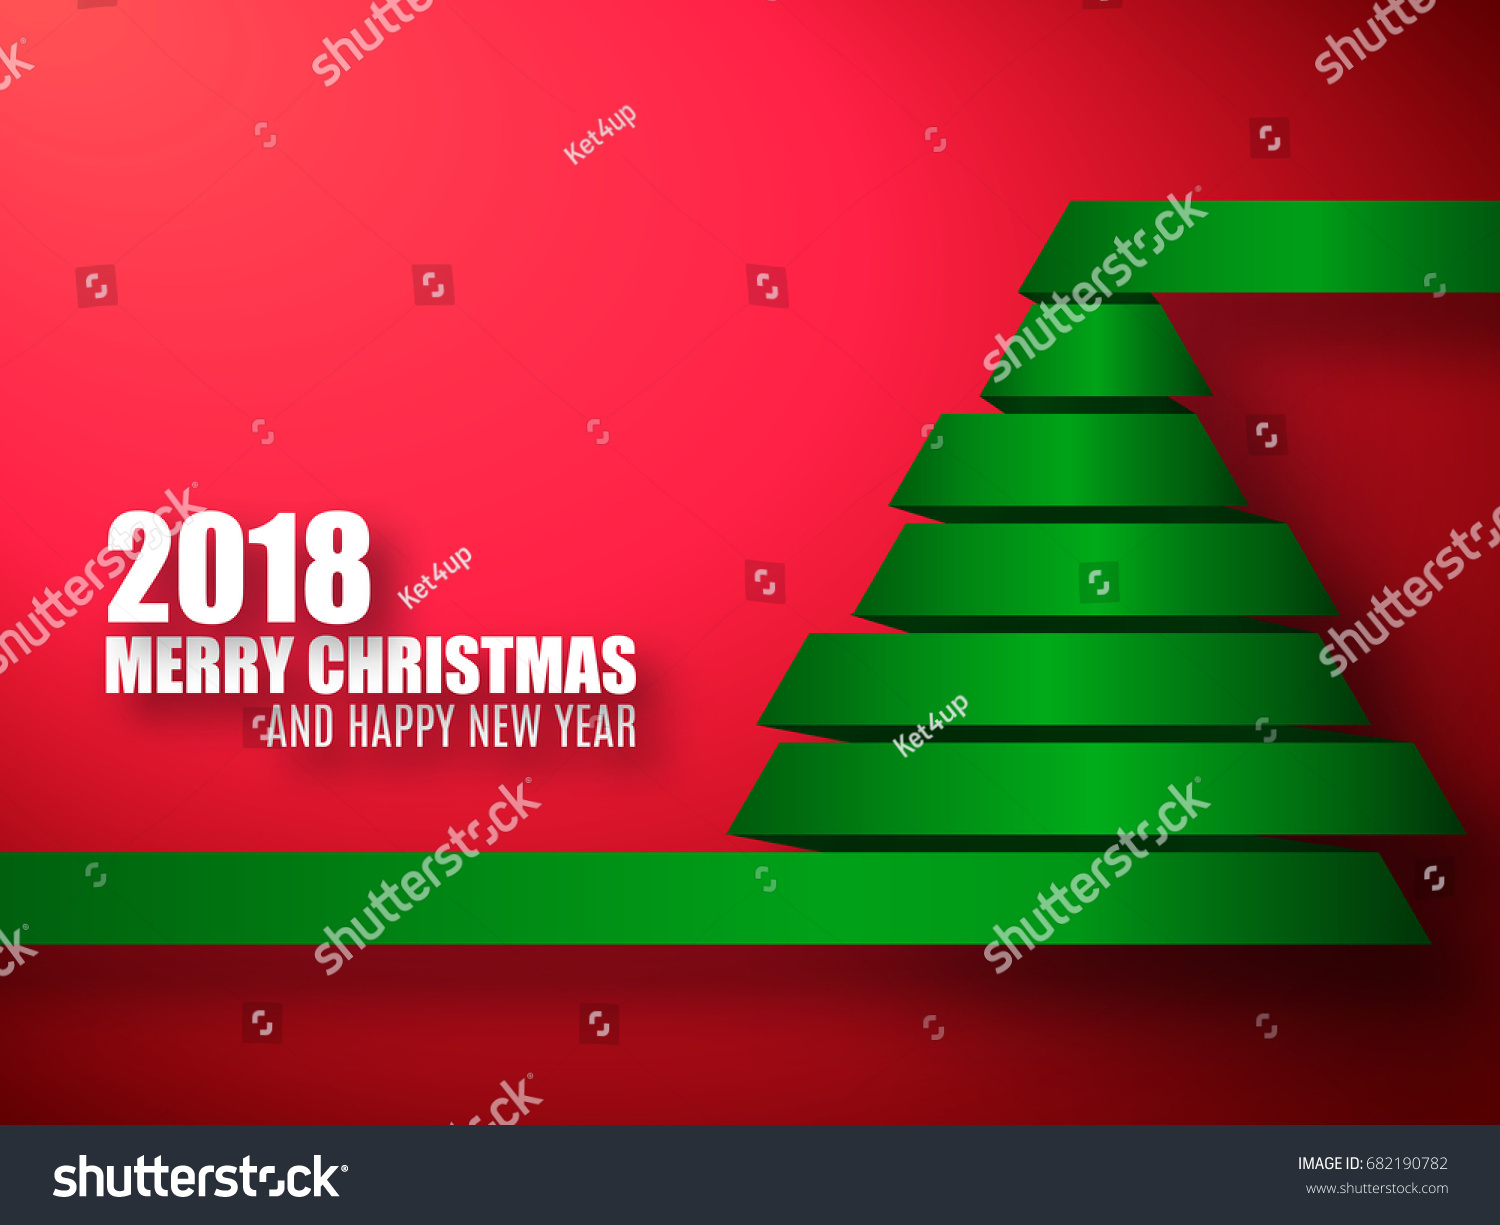 2018 vector template merry christmas and happy new year red background with green 3d xmas